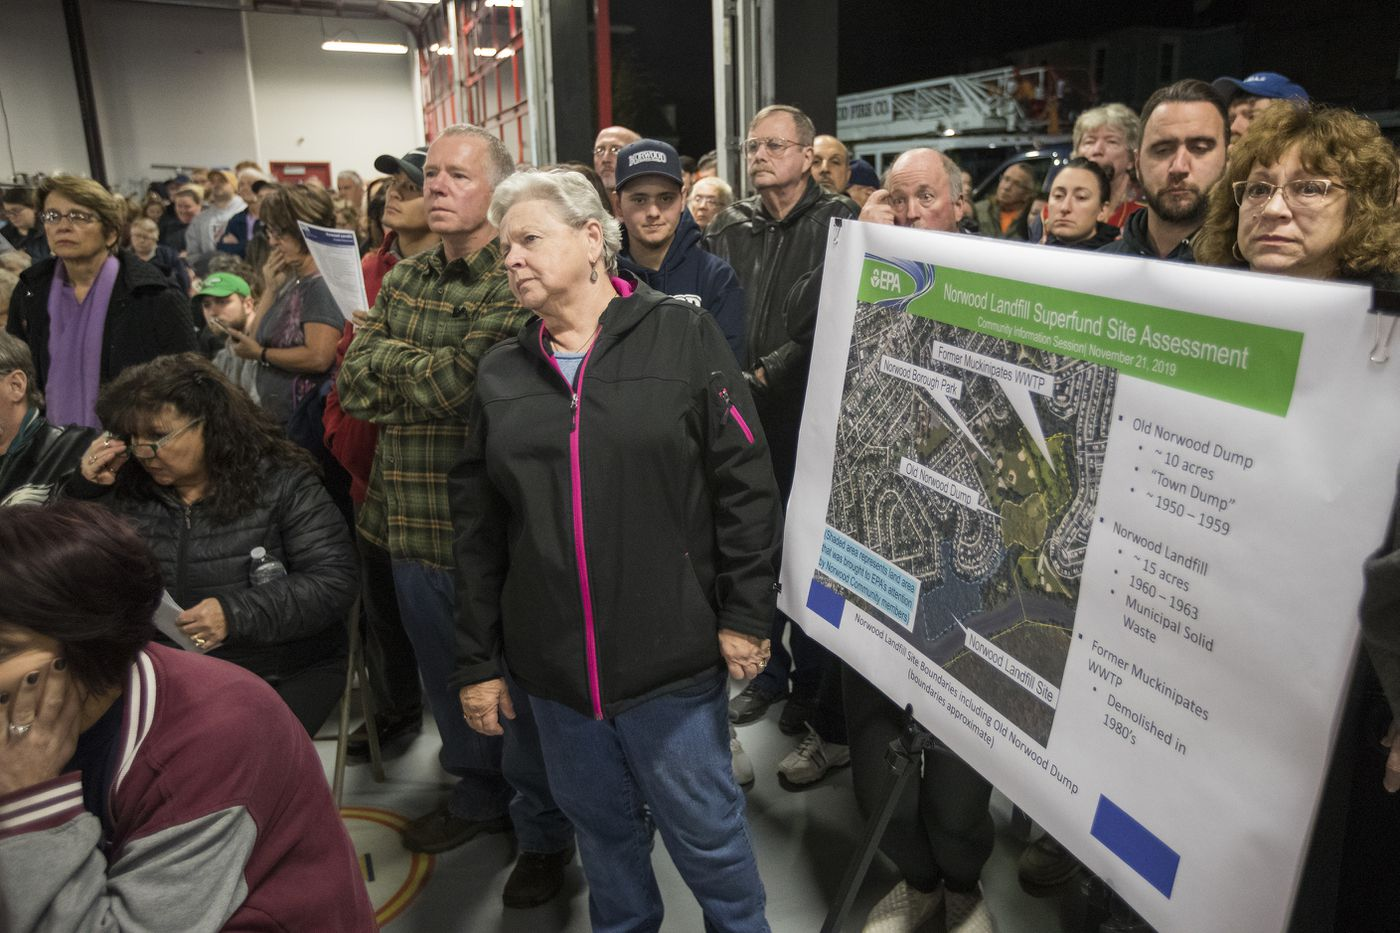 Hundreds of Norwood Residents Vent Cancer Fears Over Nearby Landfill to EPA Official